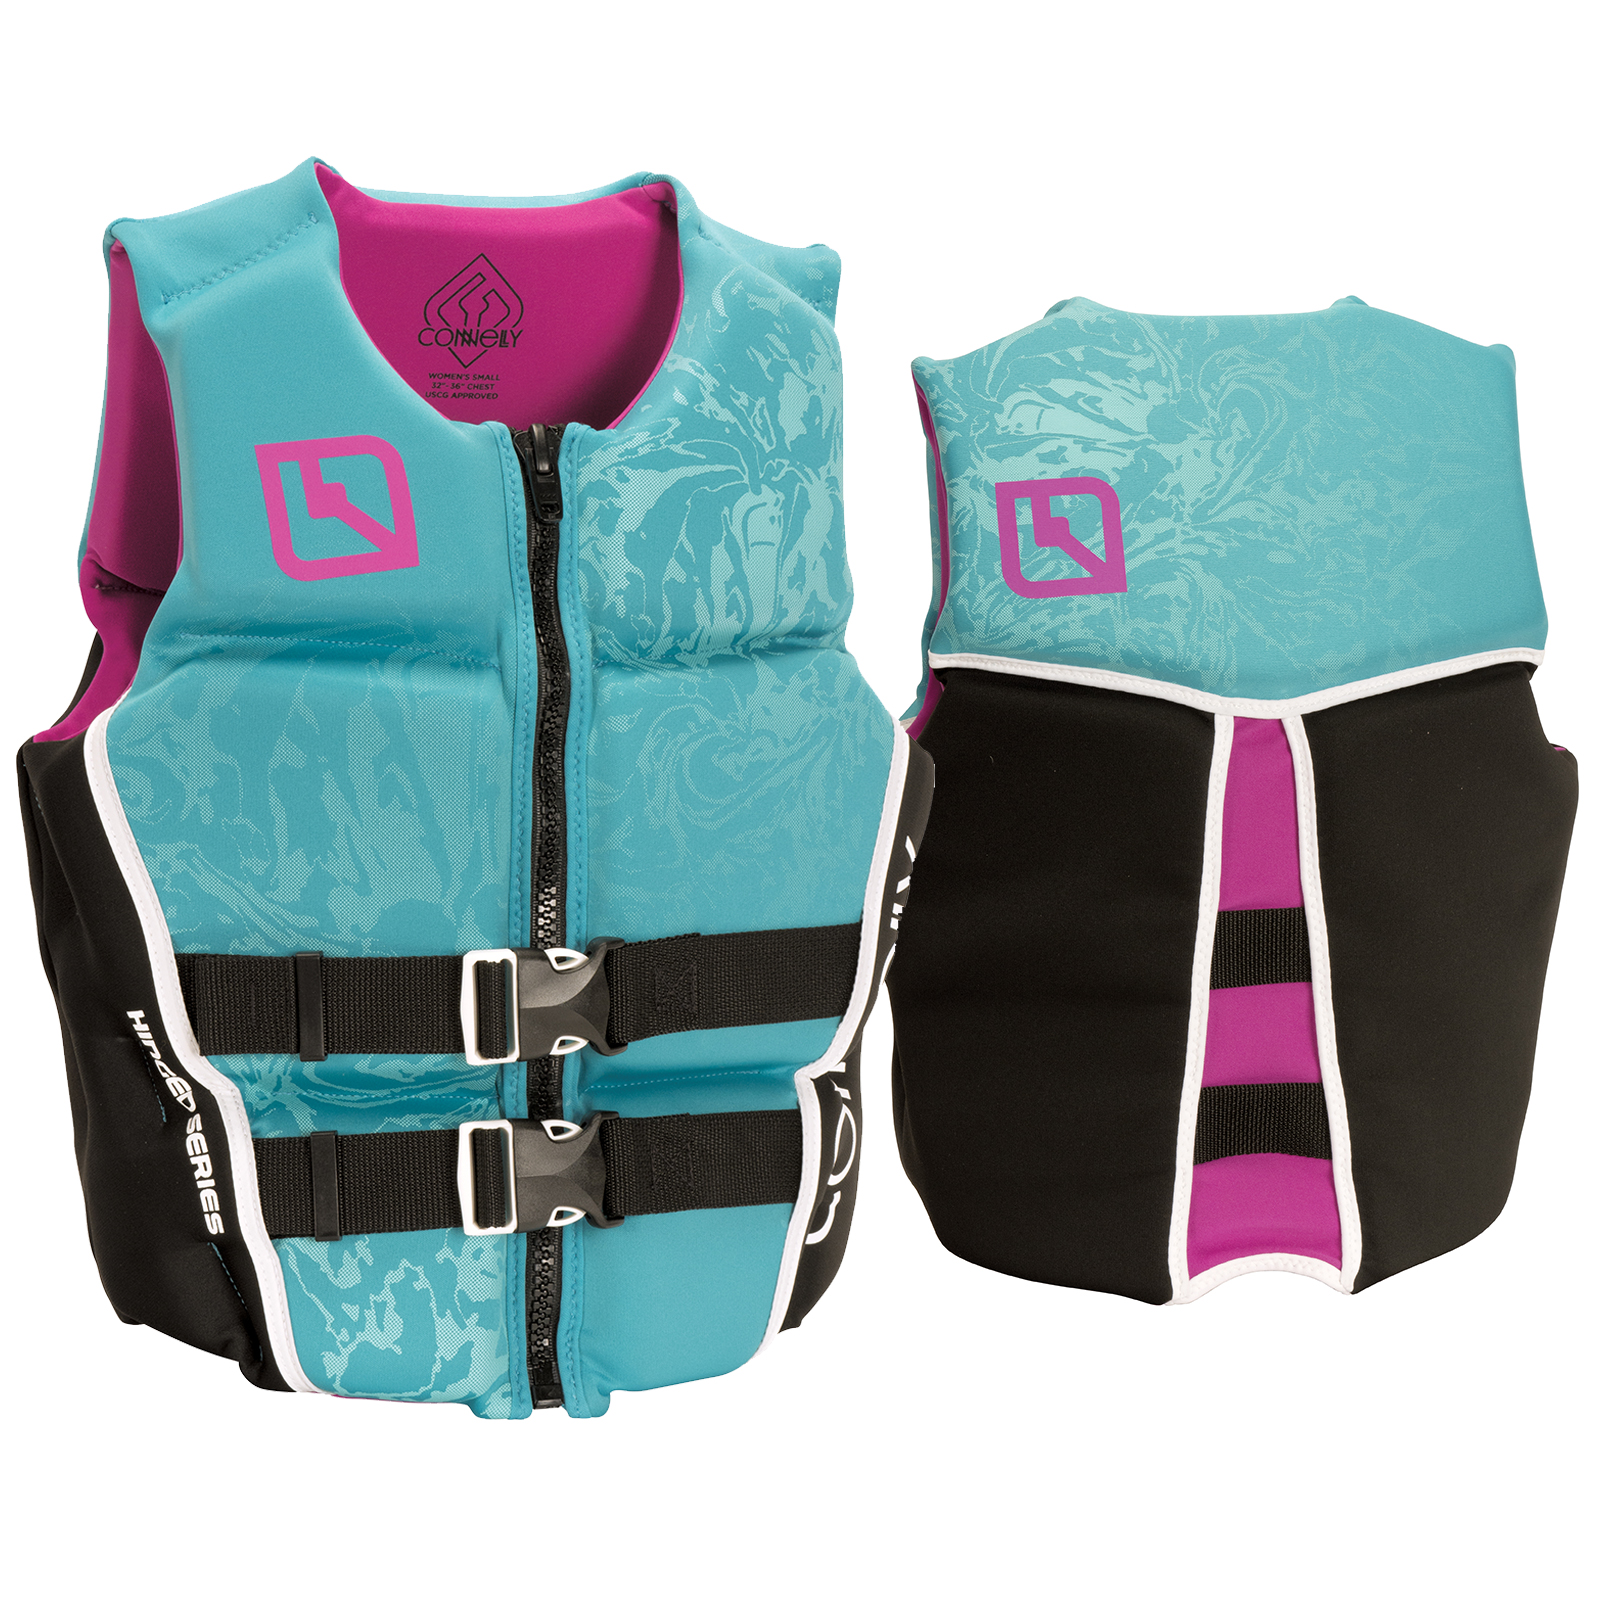 LOTUS WOMEN'S NEO LIFE VEST - PINK CONNELLY 2018